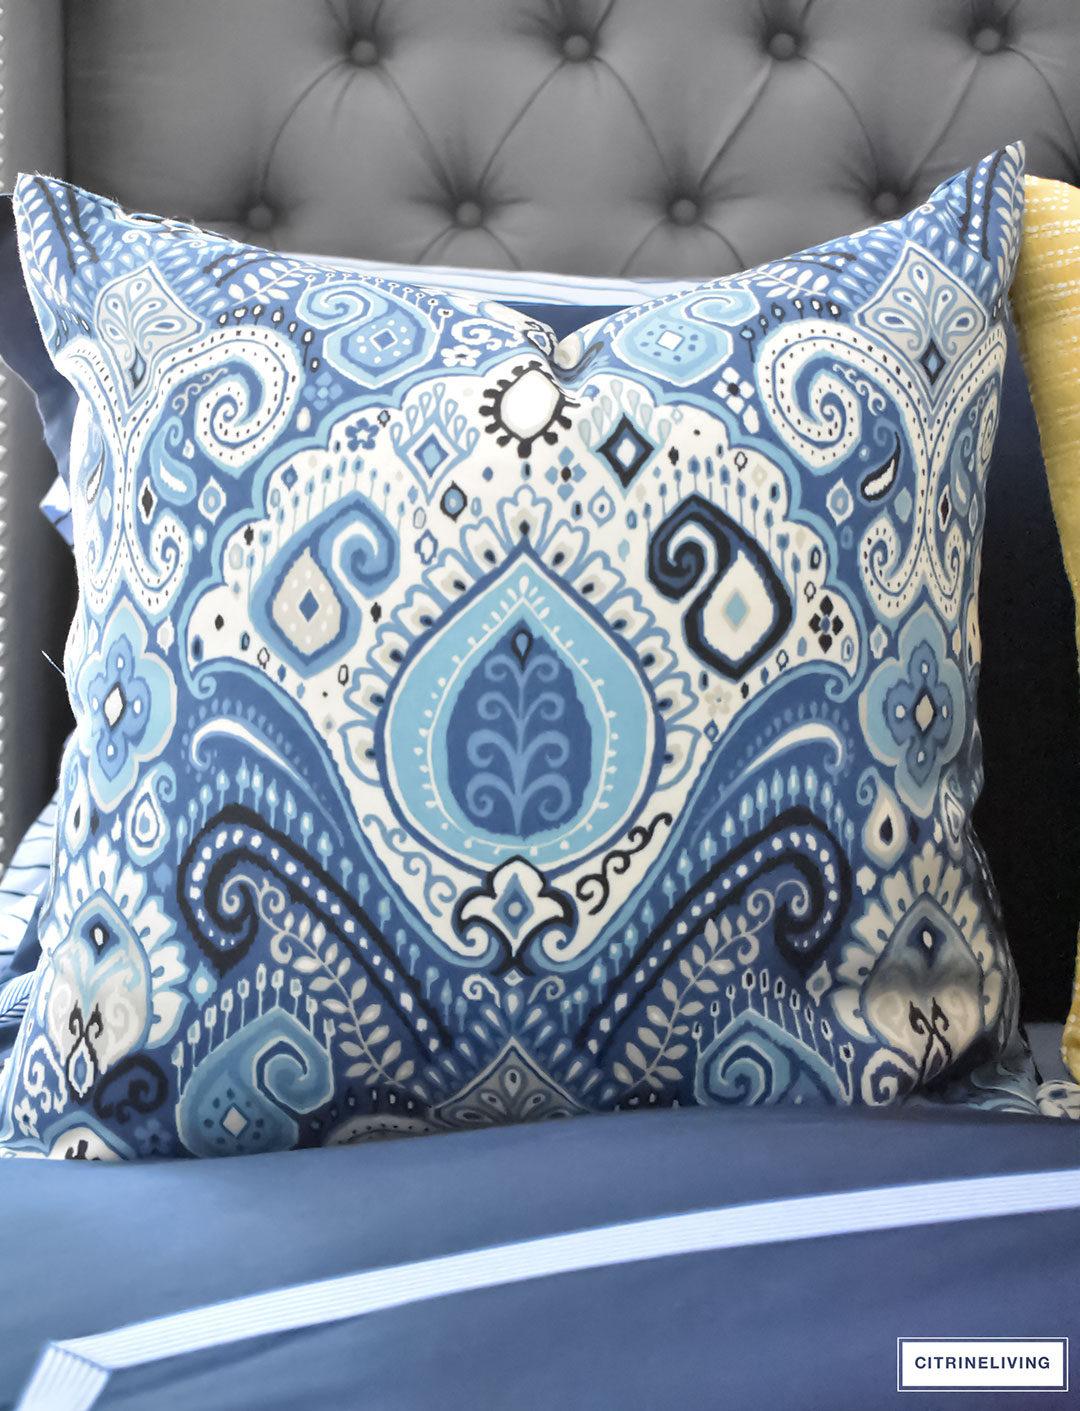 Gorgeous Blue Fall master bedroom - A masculine meets glam look with navy blue, stripes, paisley ikat, greek key, leopard and gold - perfectly tailored and chic!